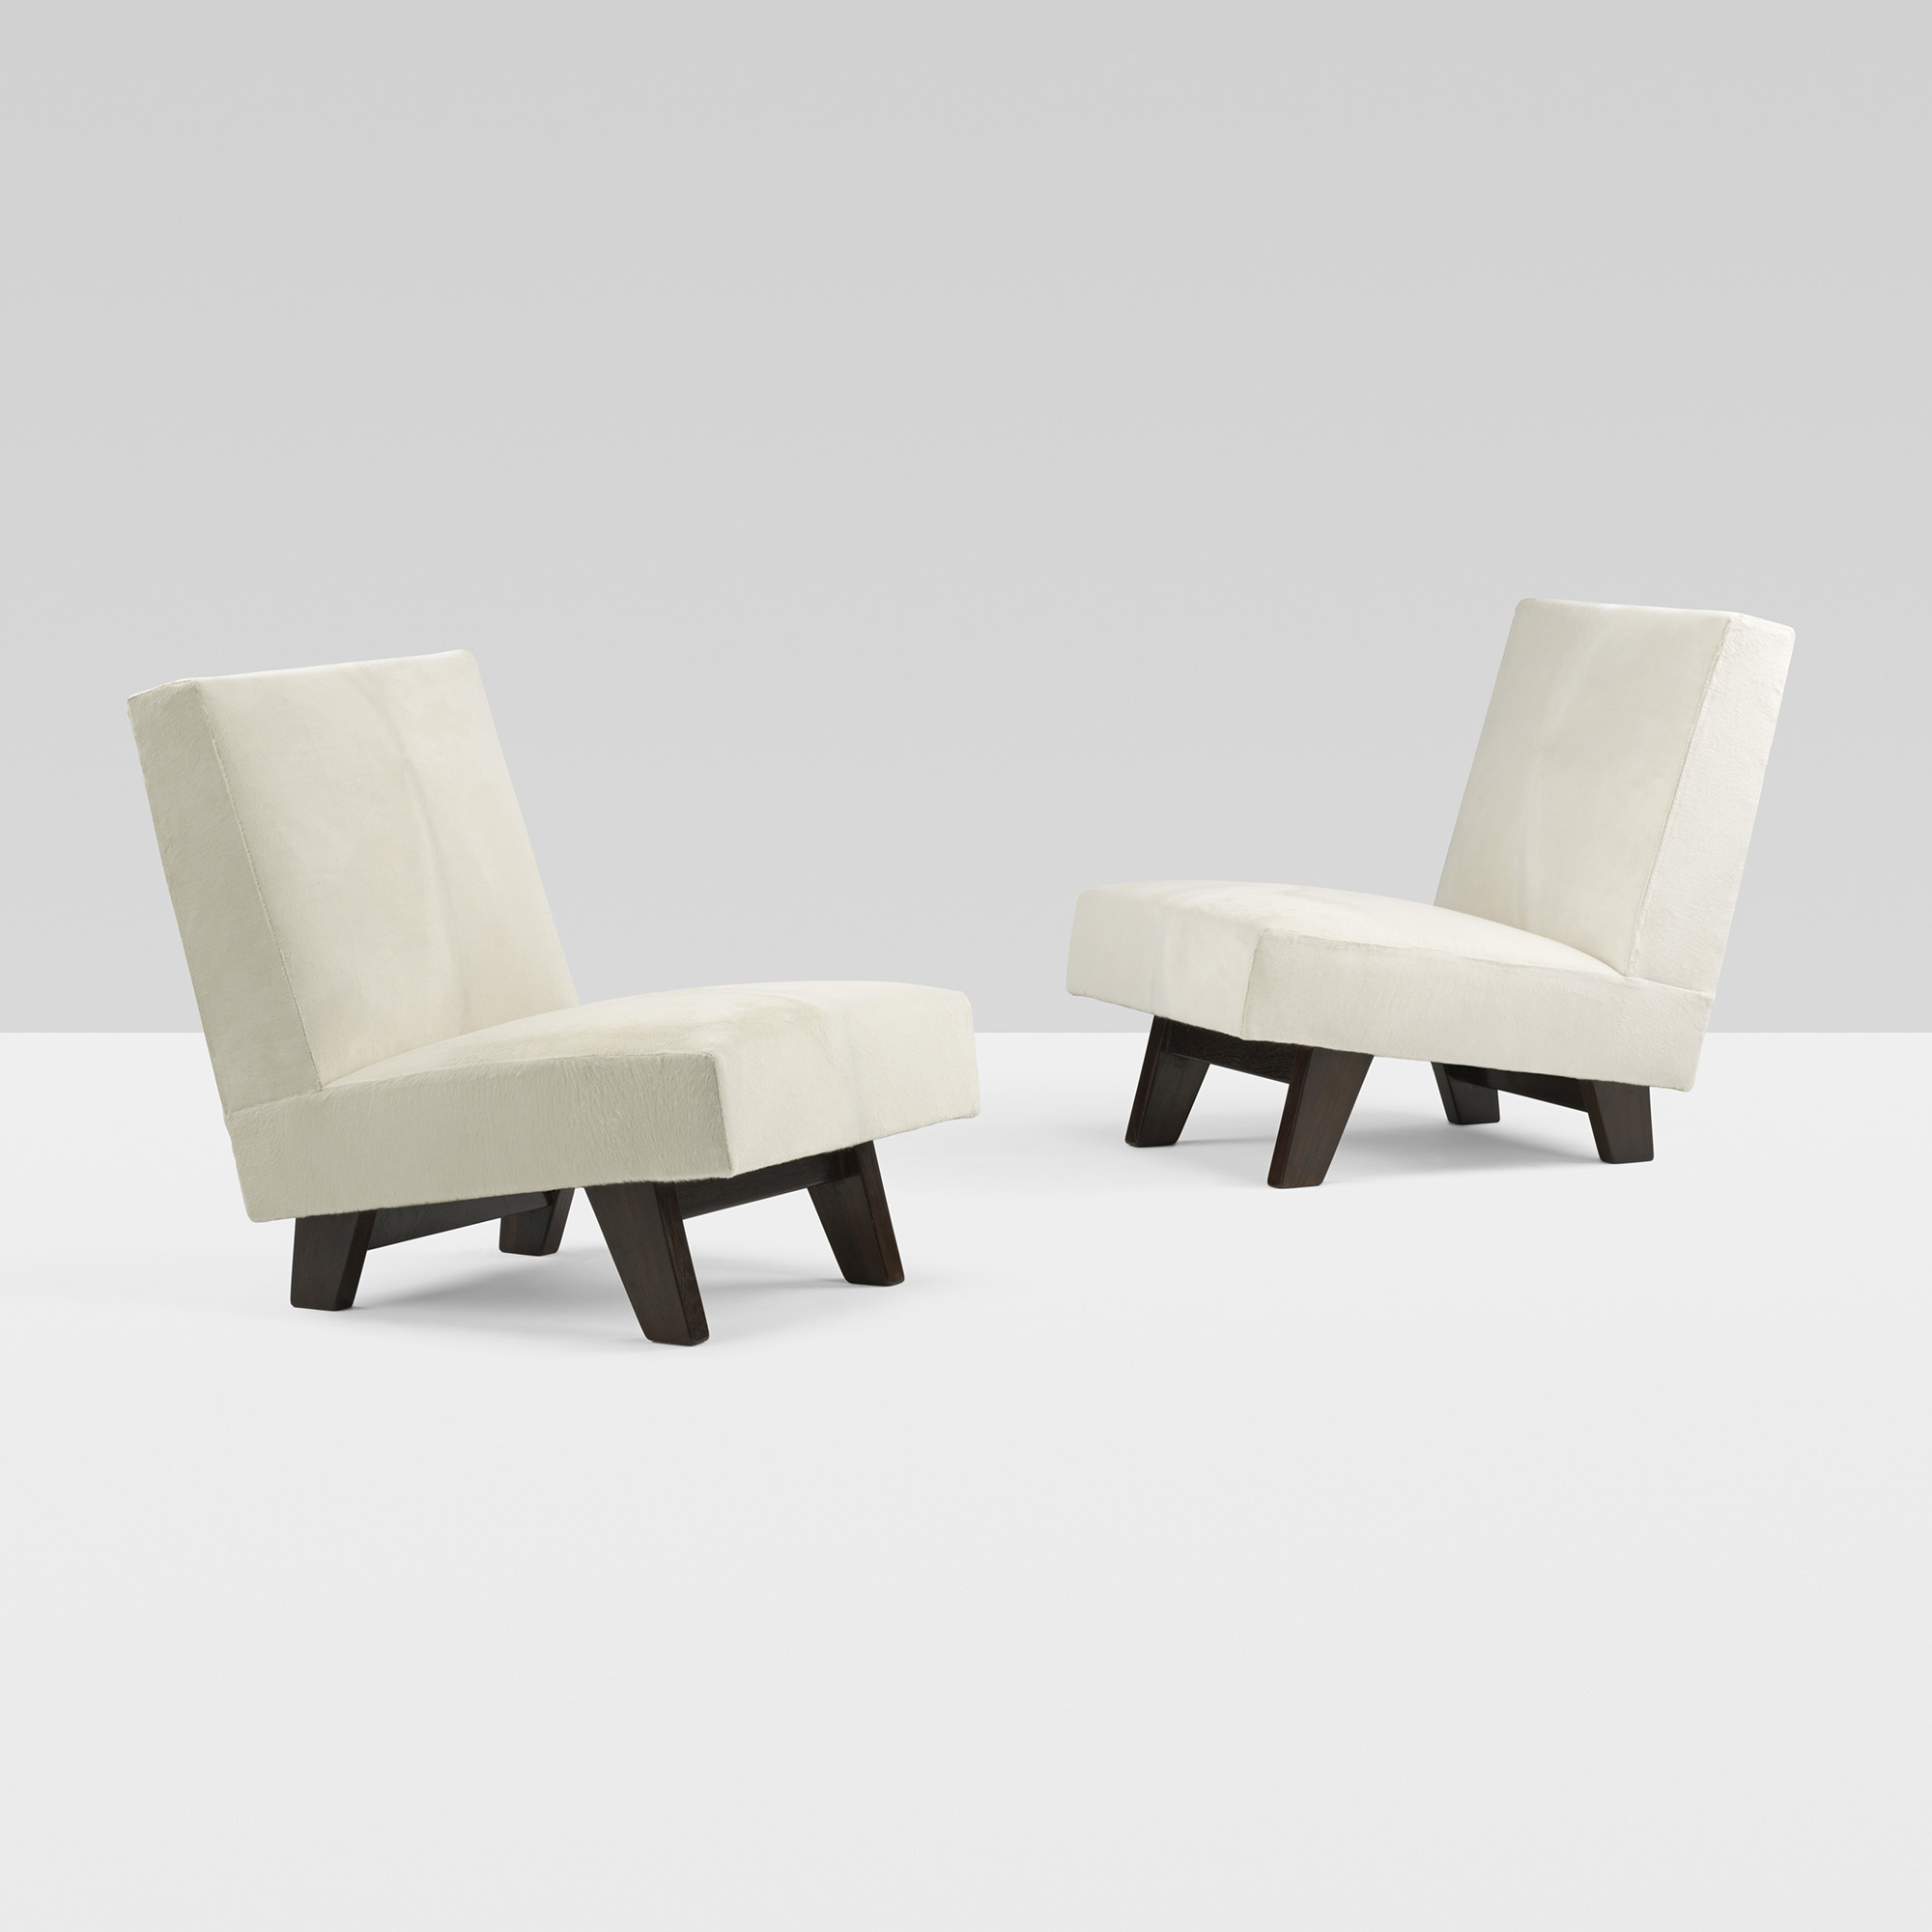 178: Le Corbusier And Pierre Jeanneret / Pair Of Lounge Chairs From The  High Court